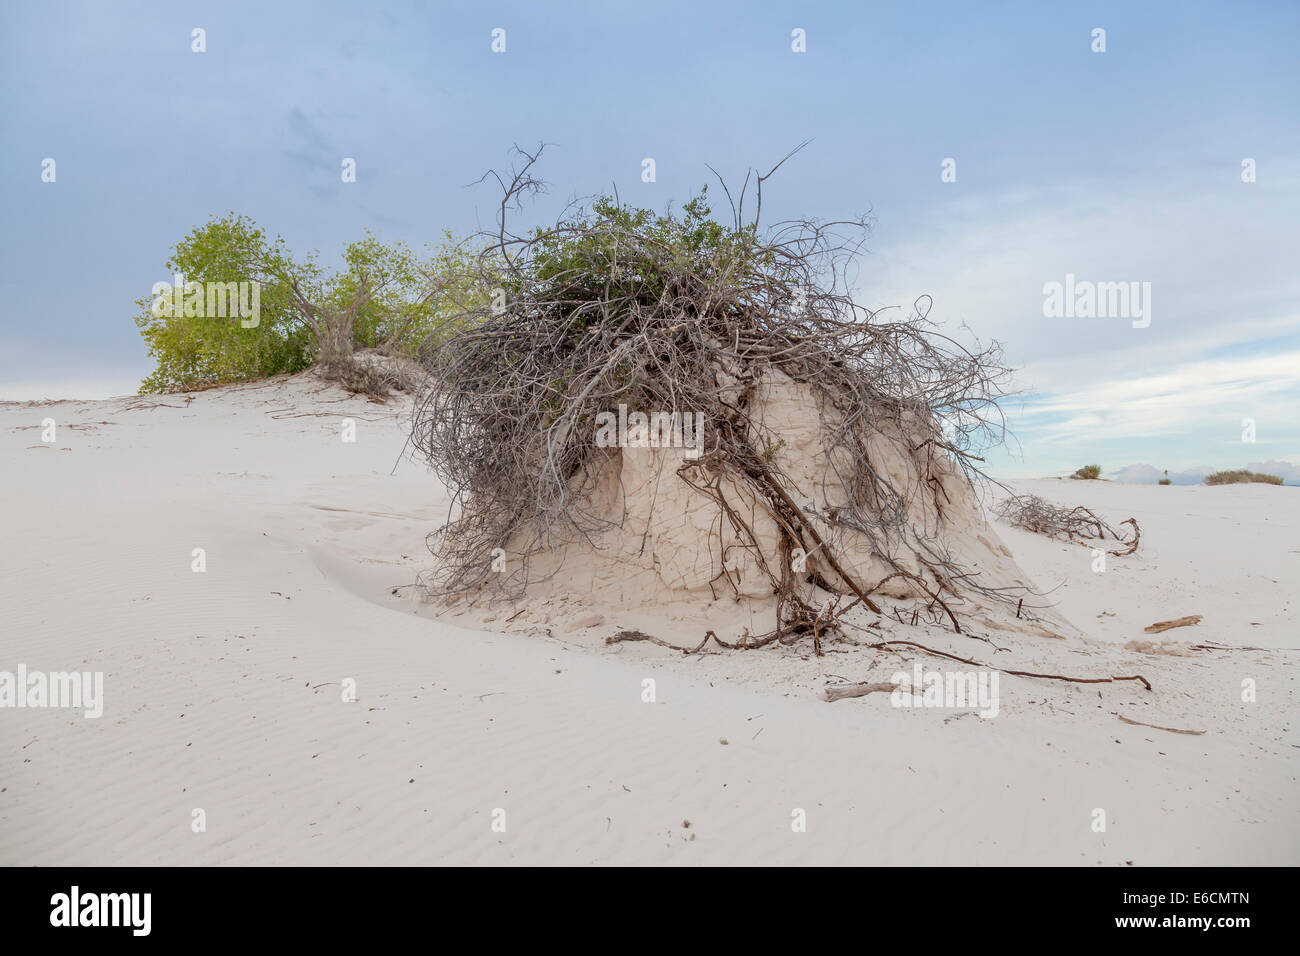 Skunkbush Sumac pedestal formation at White Sands National Monument in New Mexico. - Stock Image